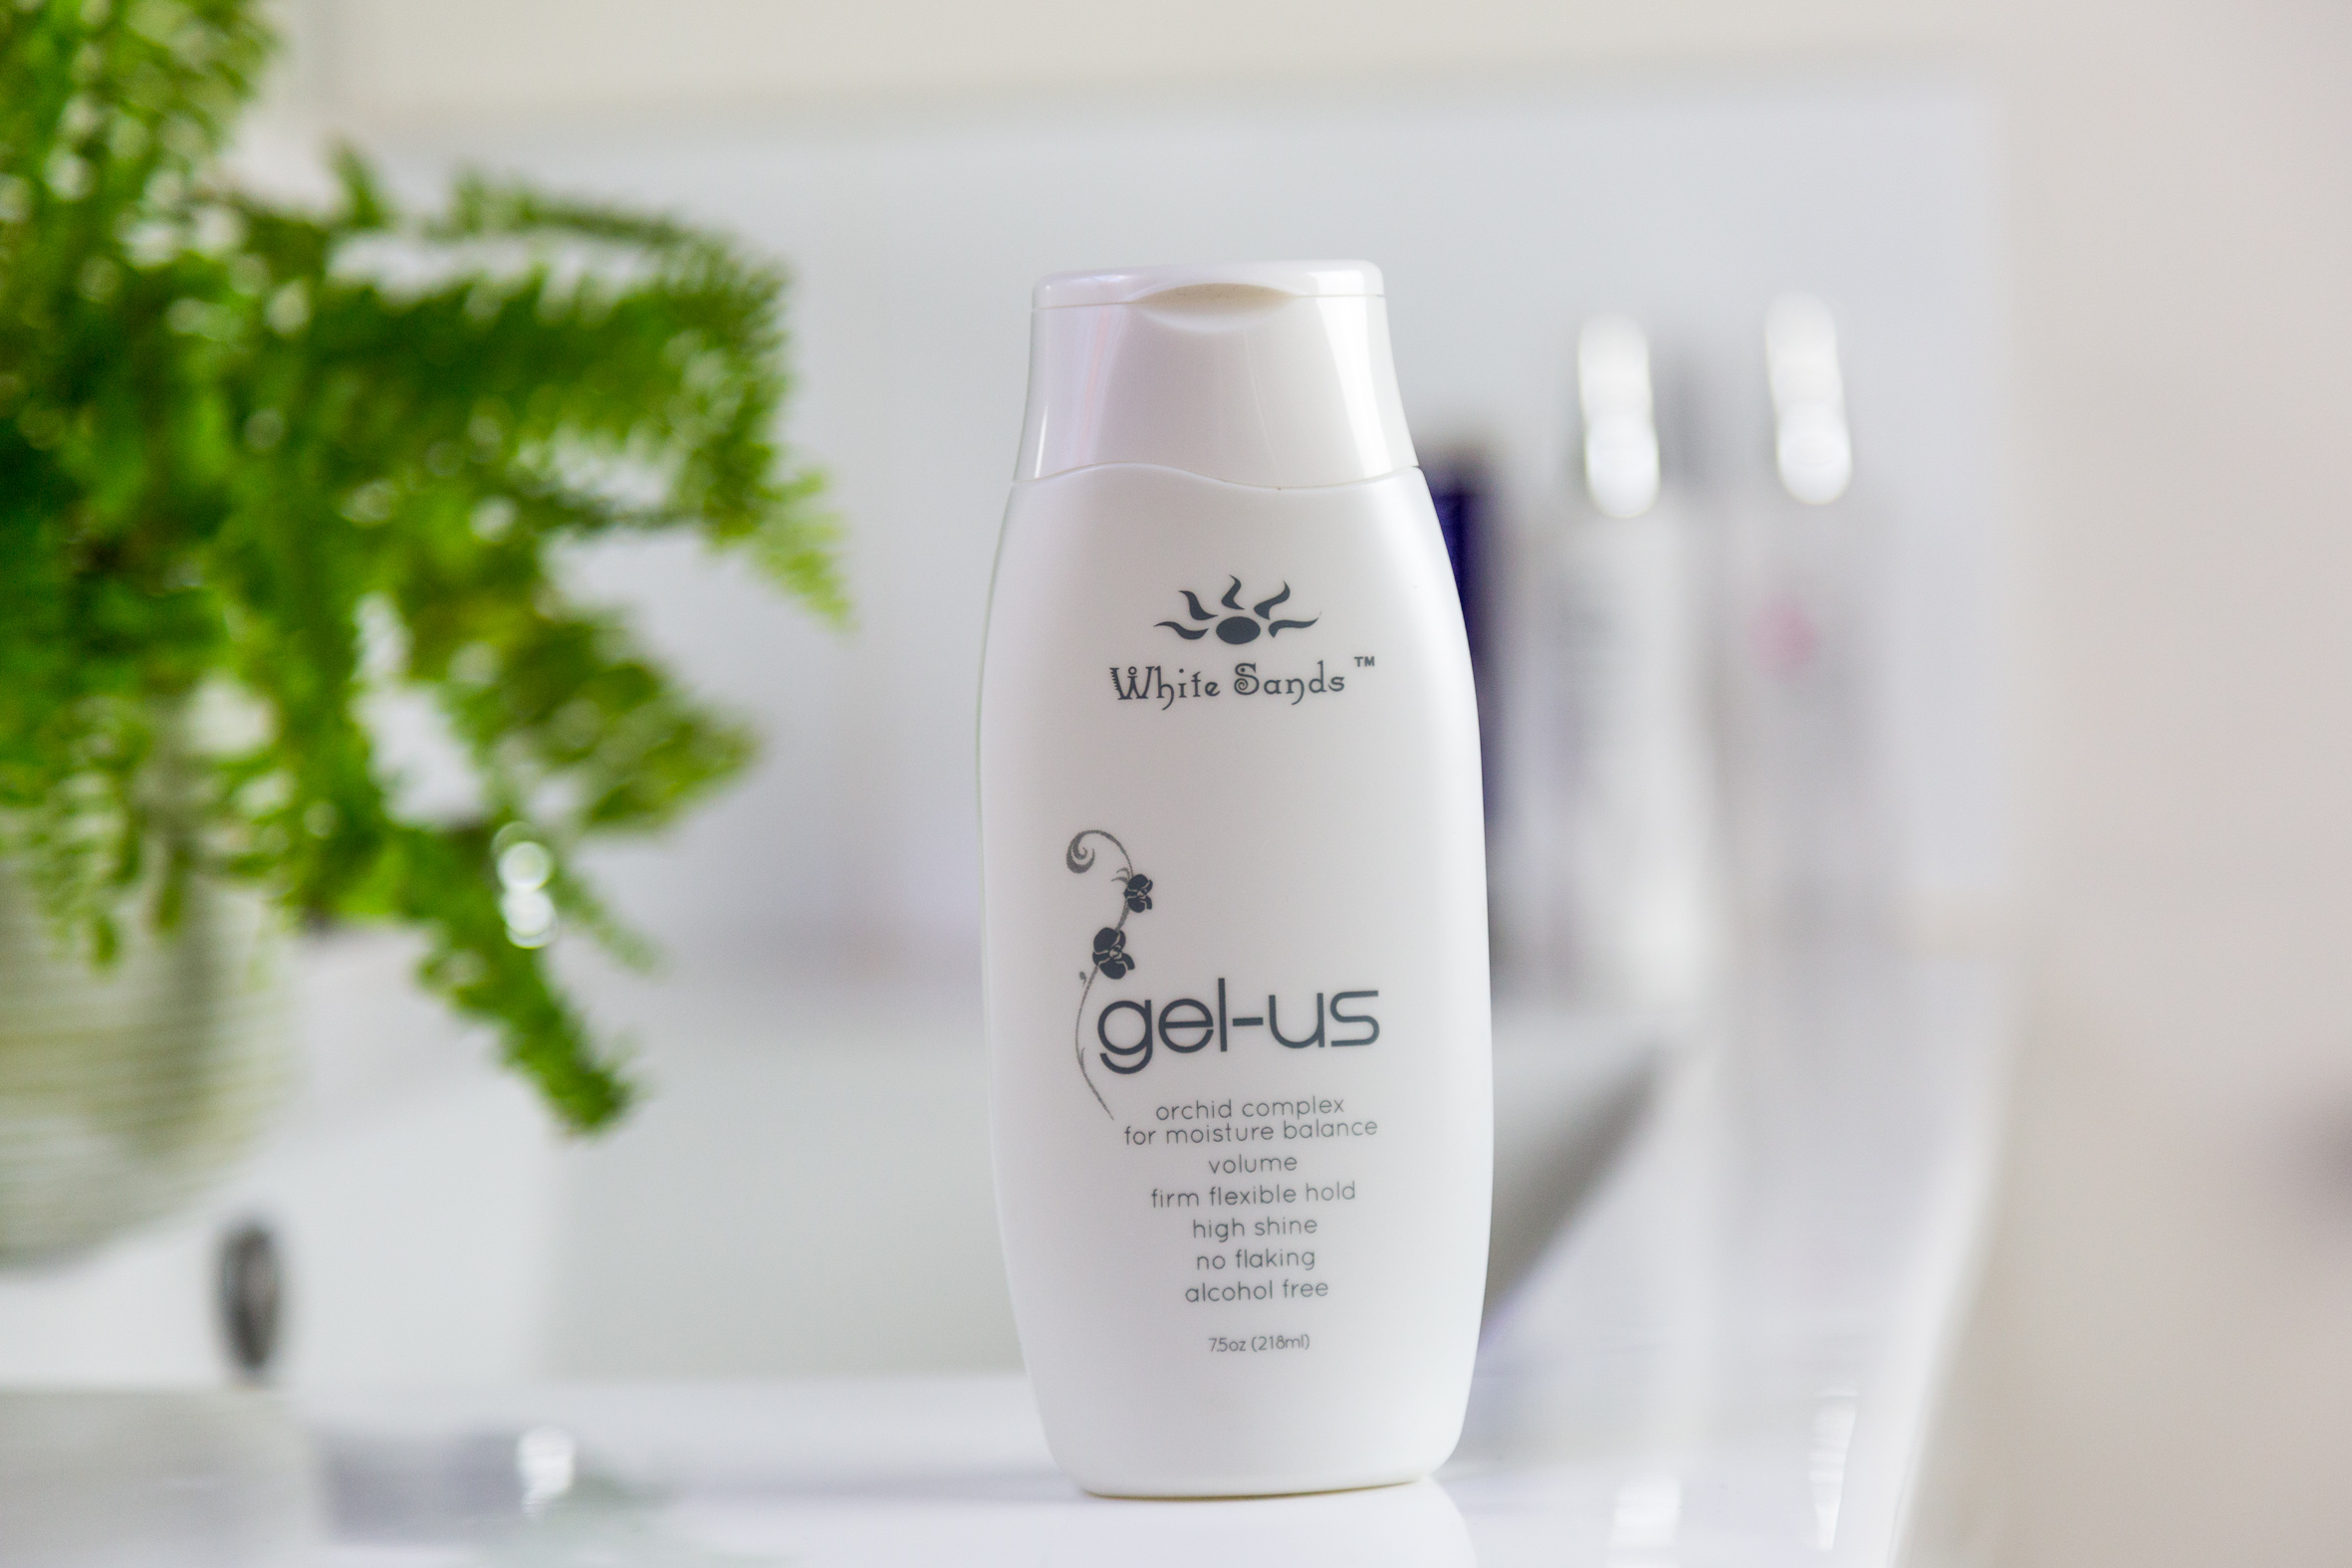 Gel-Us - Gel-Us allows 100% of the entire product to work synergistically in styling and conditioning to provide hydration and shine unlike any gel out there. With hair now in a perfect moisture balance after using Gel-Us, each cuticle layer is closed to eliminate frizz, improve texture, repel moisture and provide volume.222ml